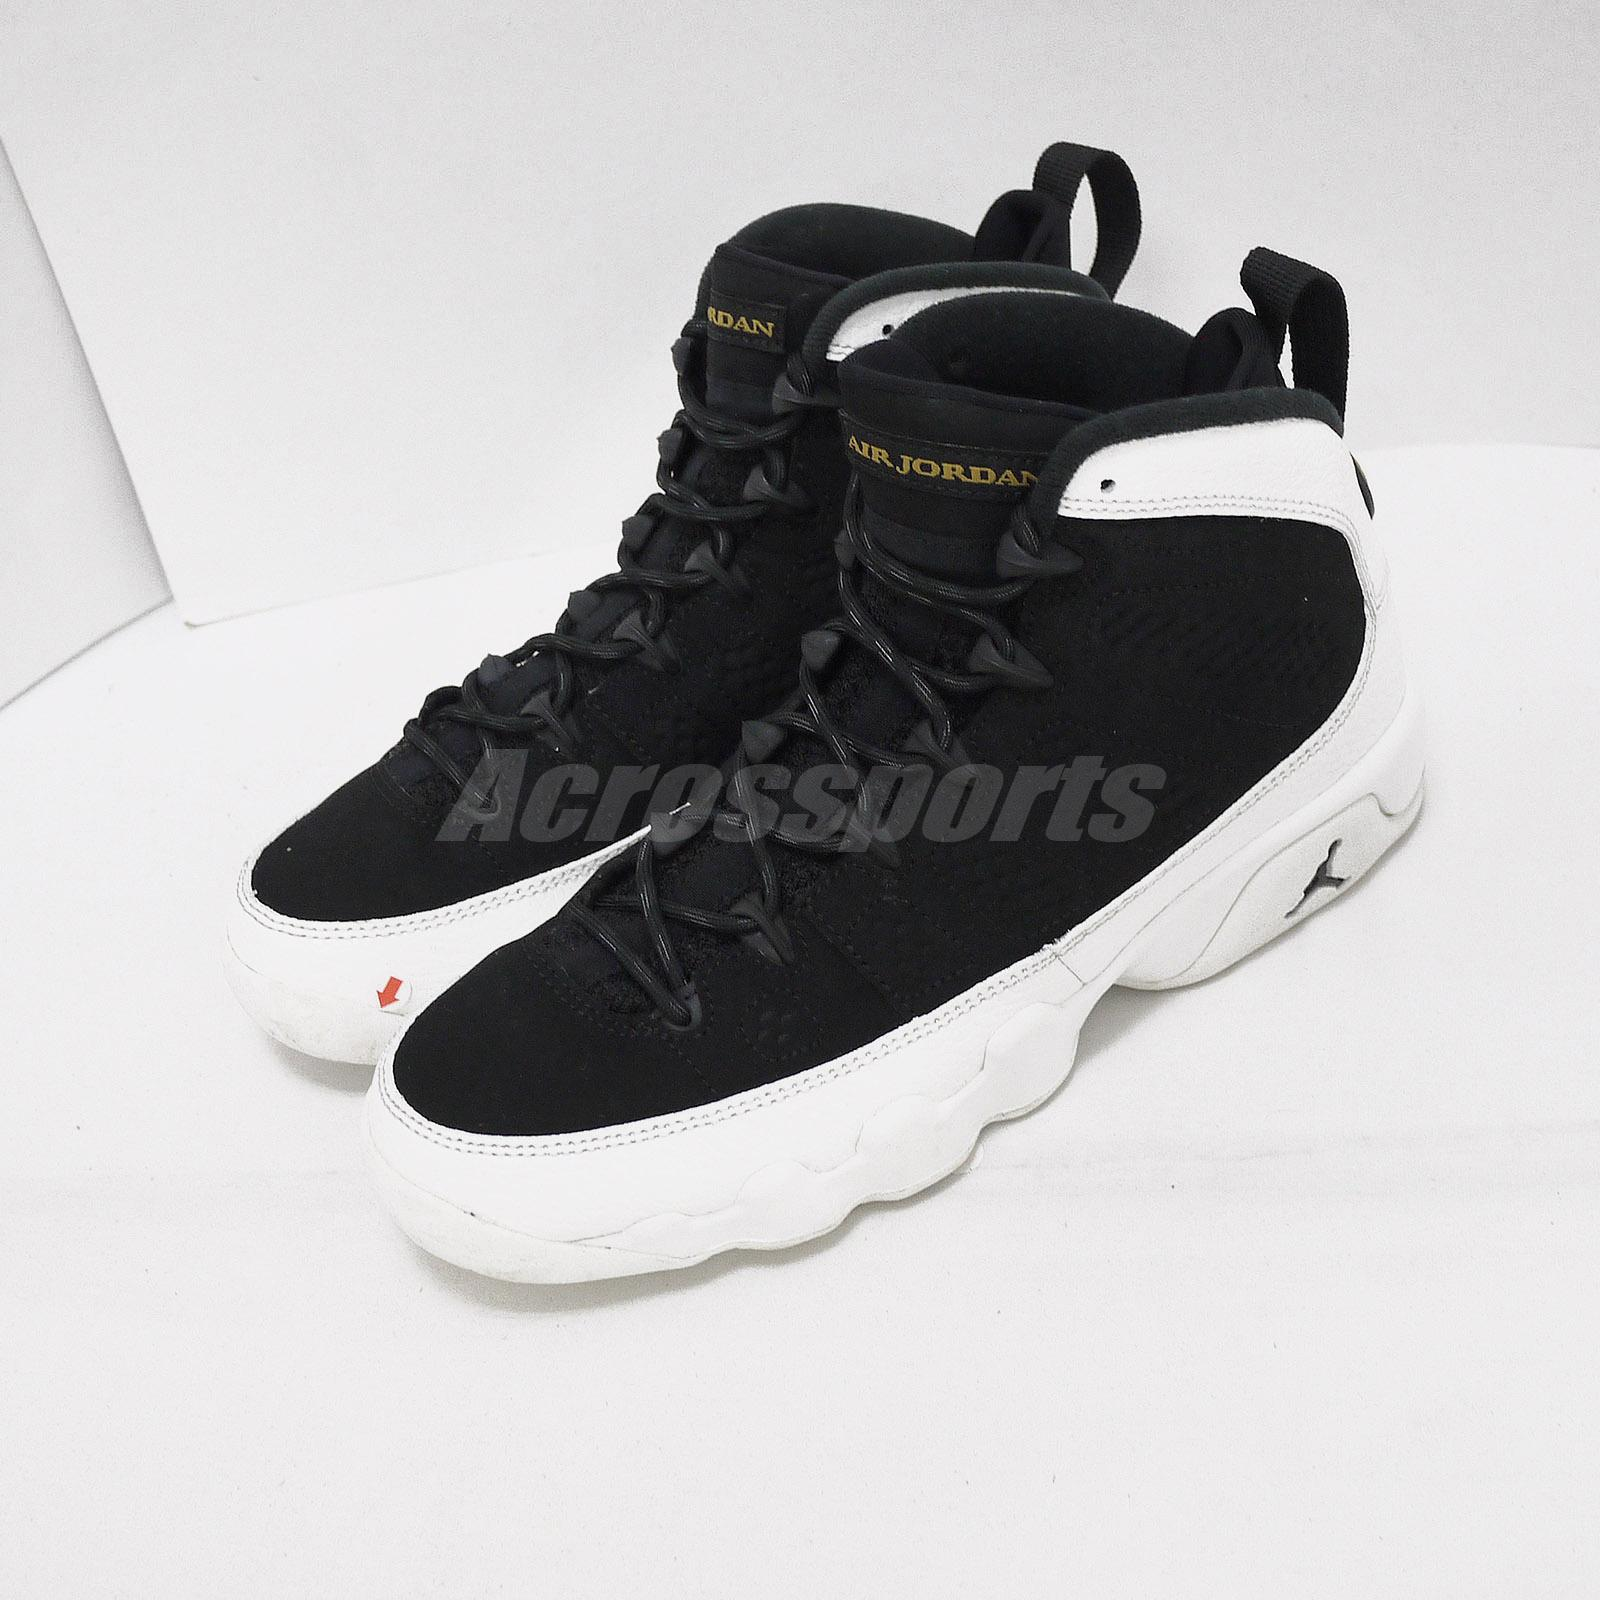 more photos 6cbc1 037ea Details about Nike Air Jordan 9 Retro BG Pre-owned With Defect Kid Women  Shoes US6Y 302359-021